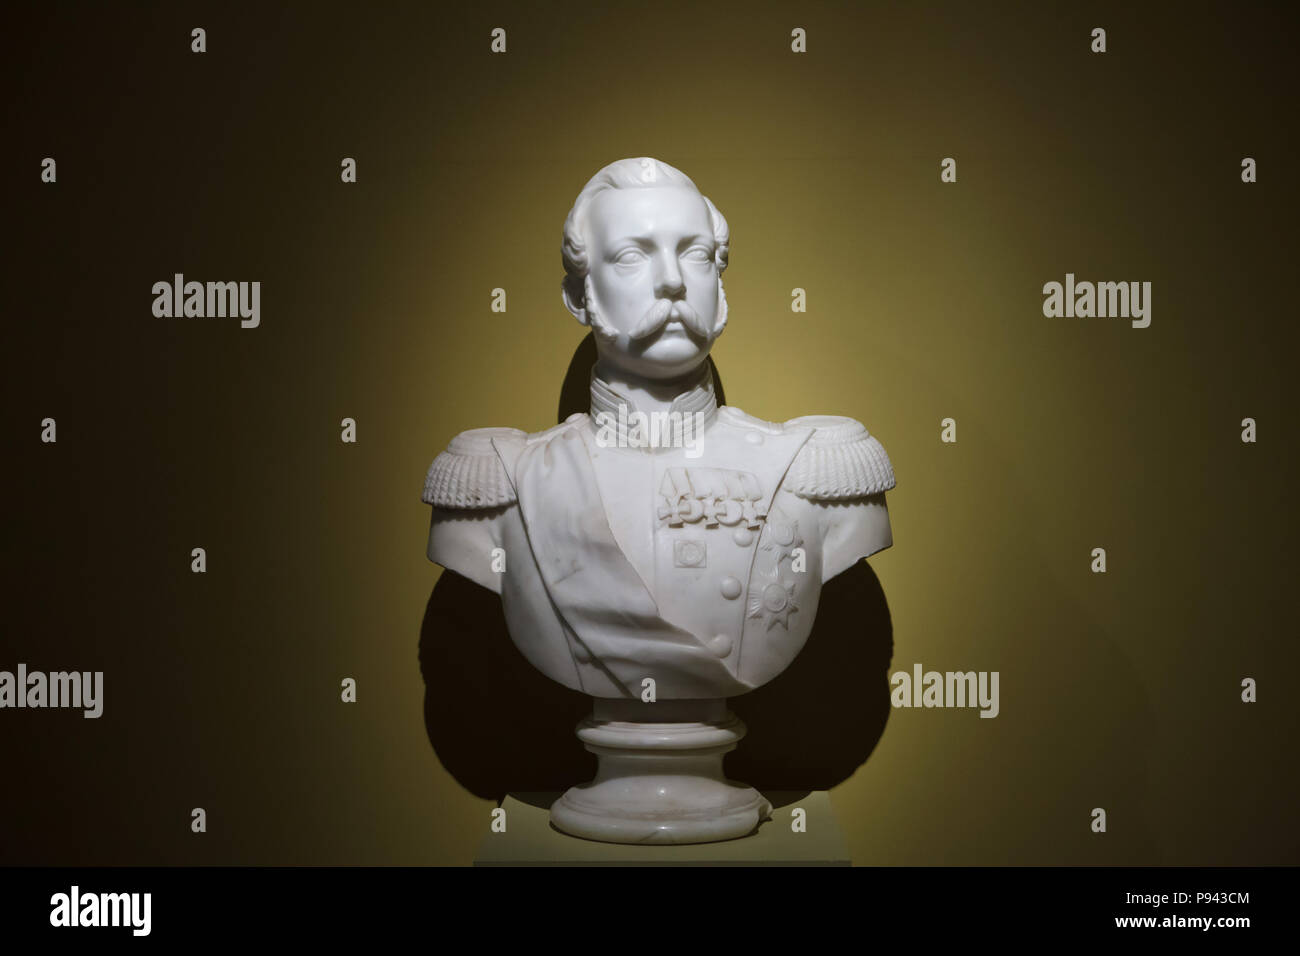 Marble bust of Emperor Alexander II of Russia by Russian sculptor Akim Laveretsky dated from around 1860 on display at the exhibition dedicated to Emperor Alexander II in the State Historical Museum in Moscow, Russia. The exhibition marking the 200th anniversary of the birth of Alexander II runs till 18 October 2018. - Stock Image